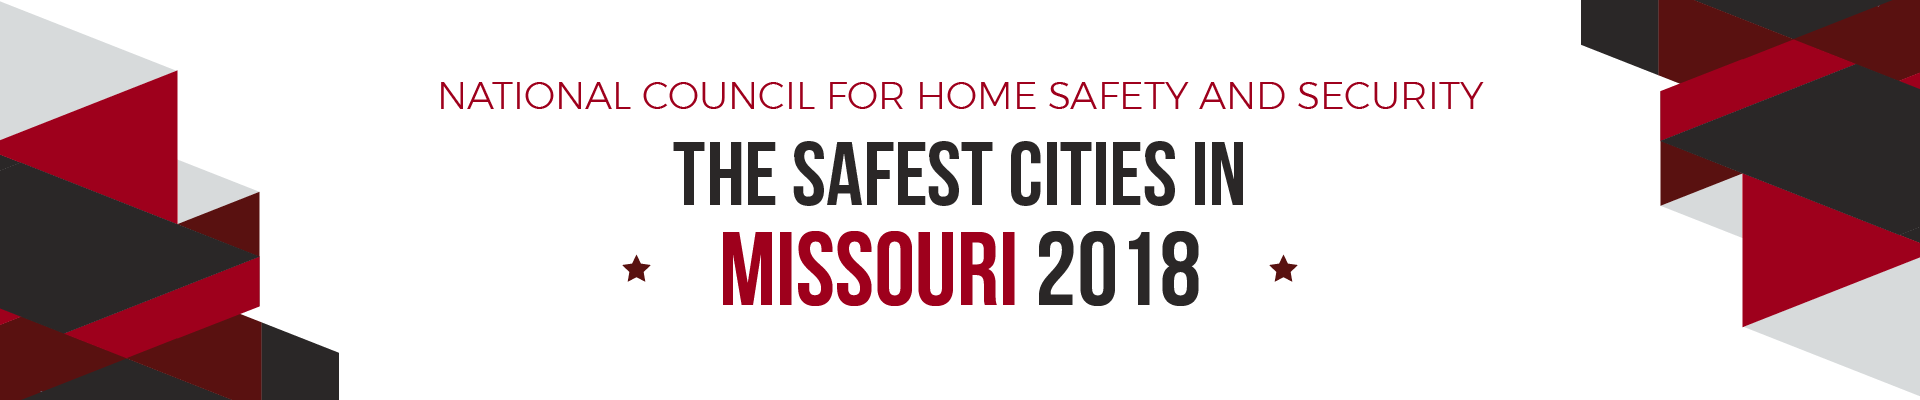 missouri safe cities 2018